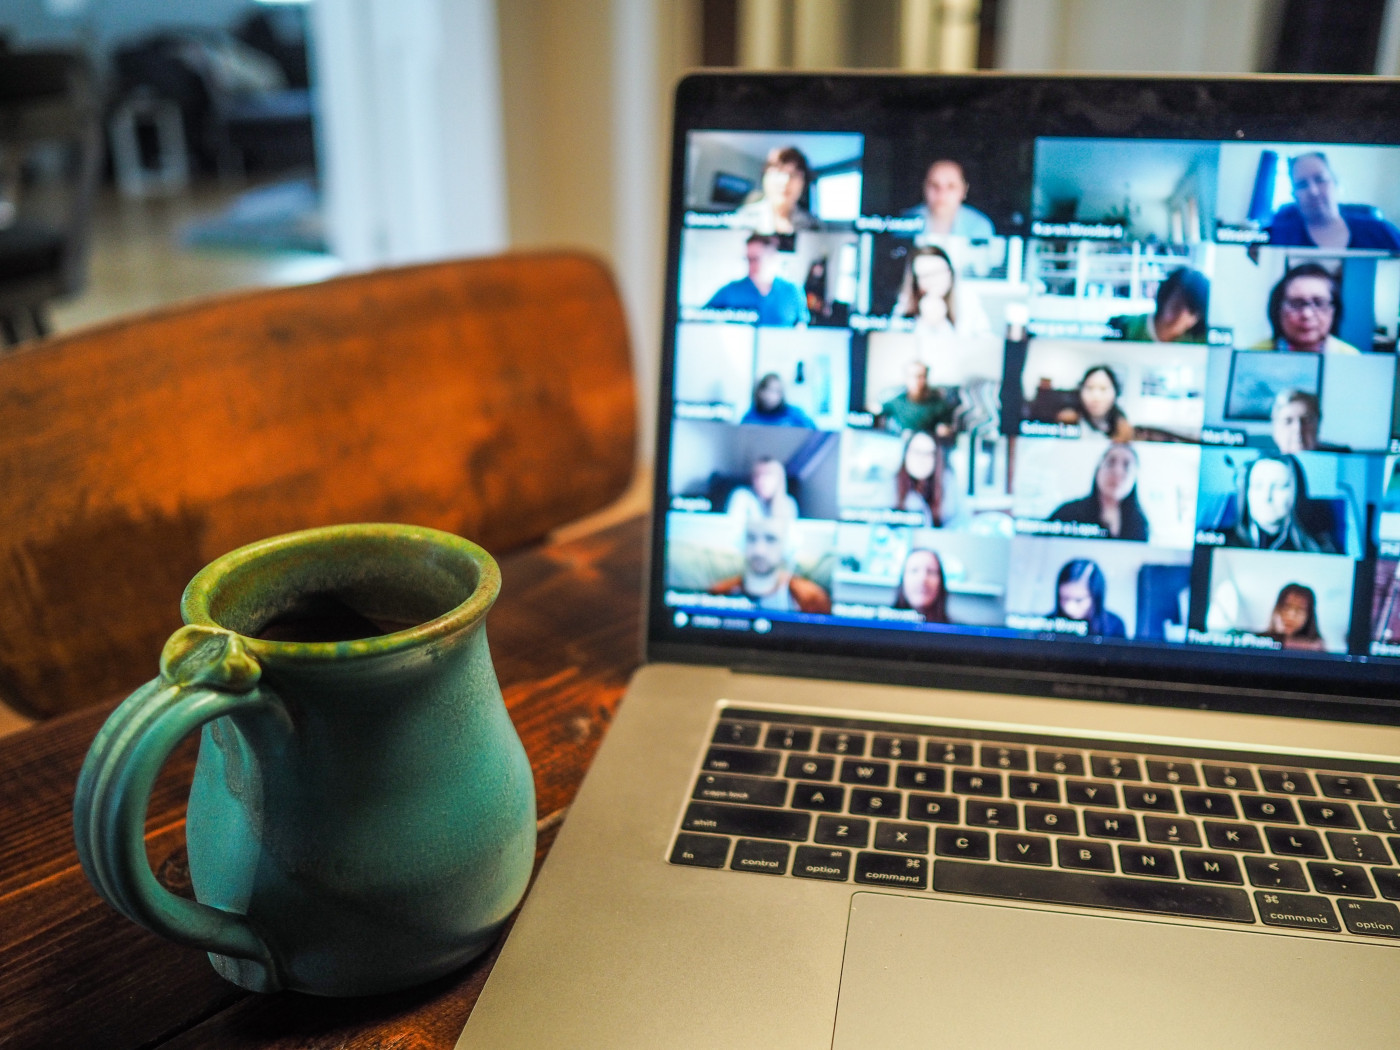 COVID-19 Launched a Video Conferencing Revolution